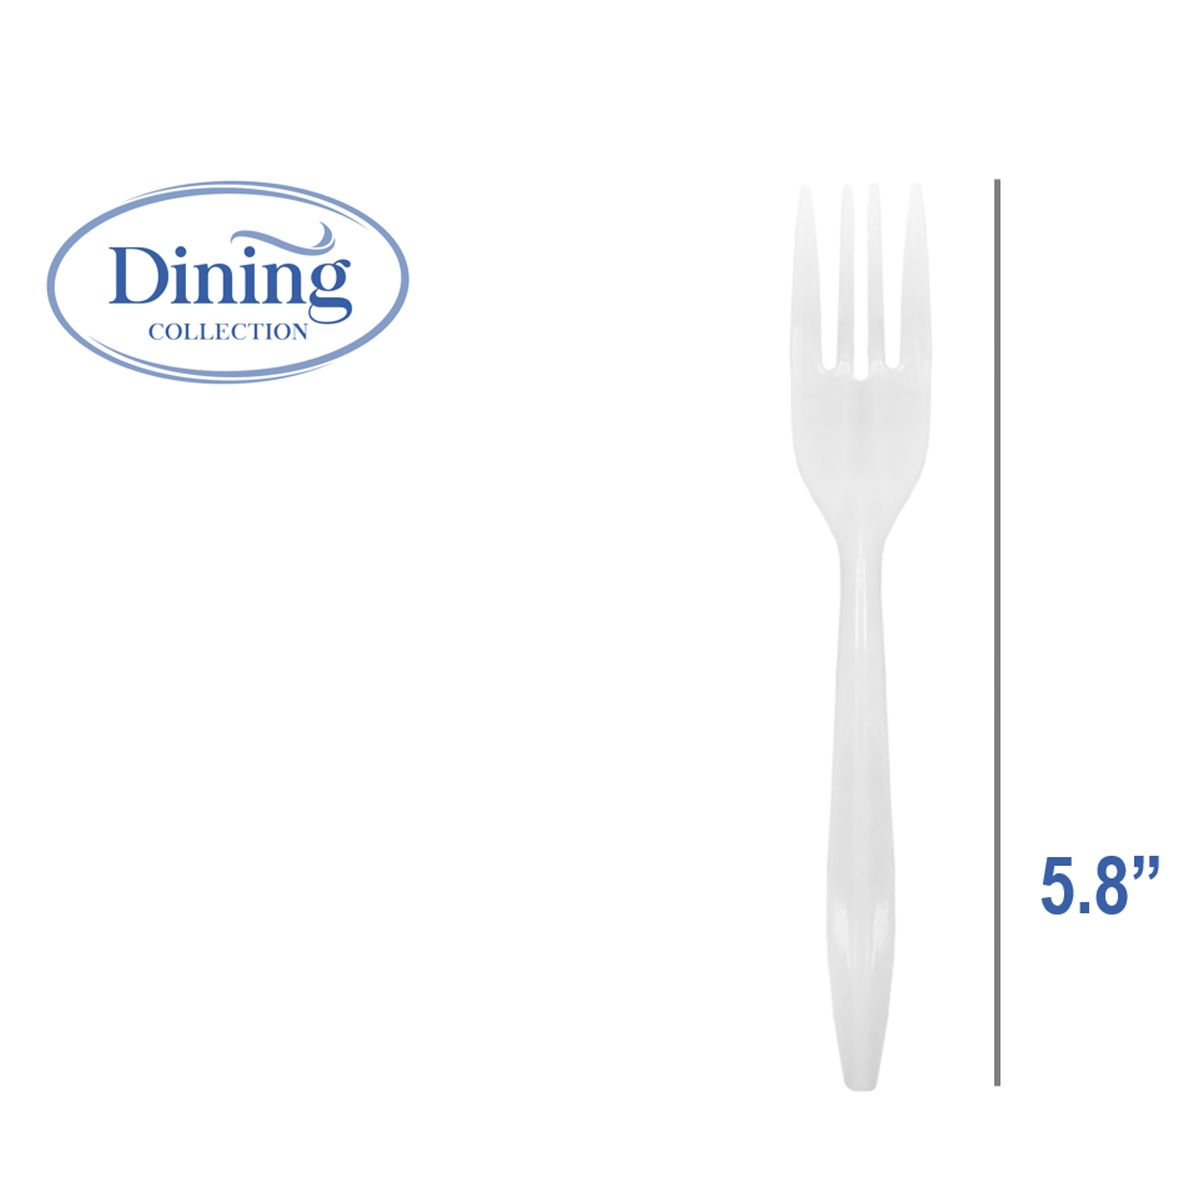 Dining Collection Forks Box